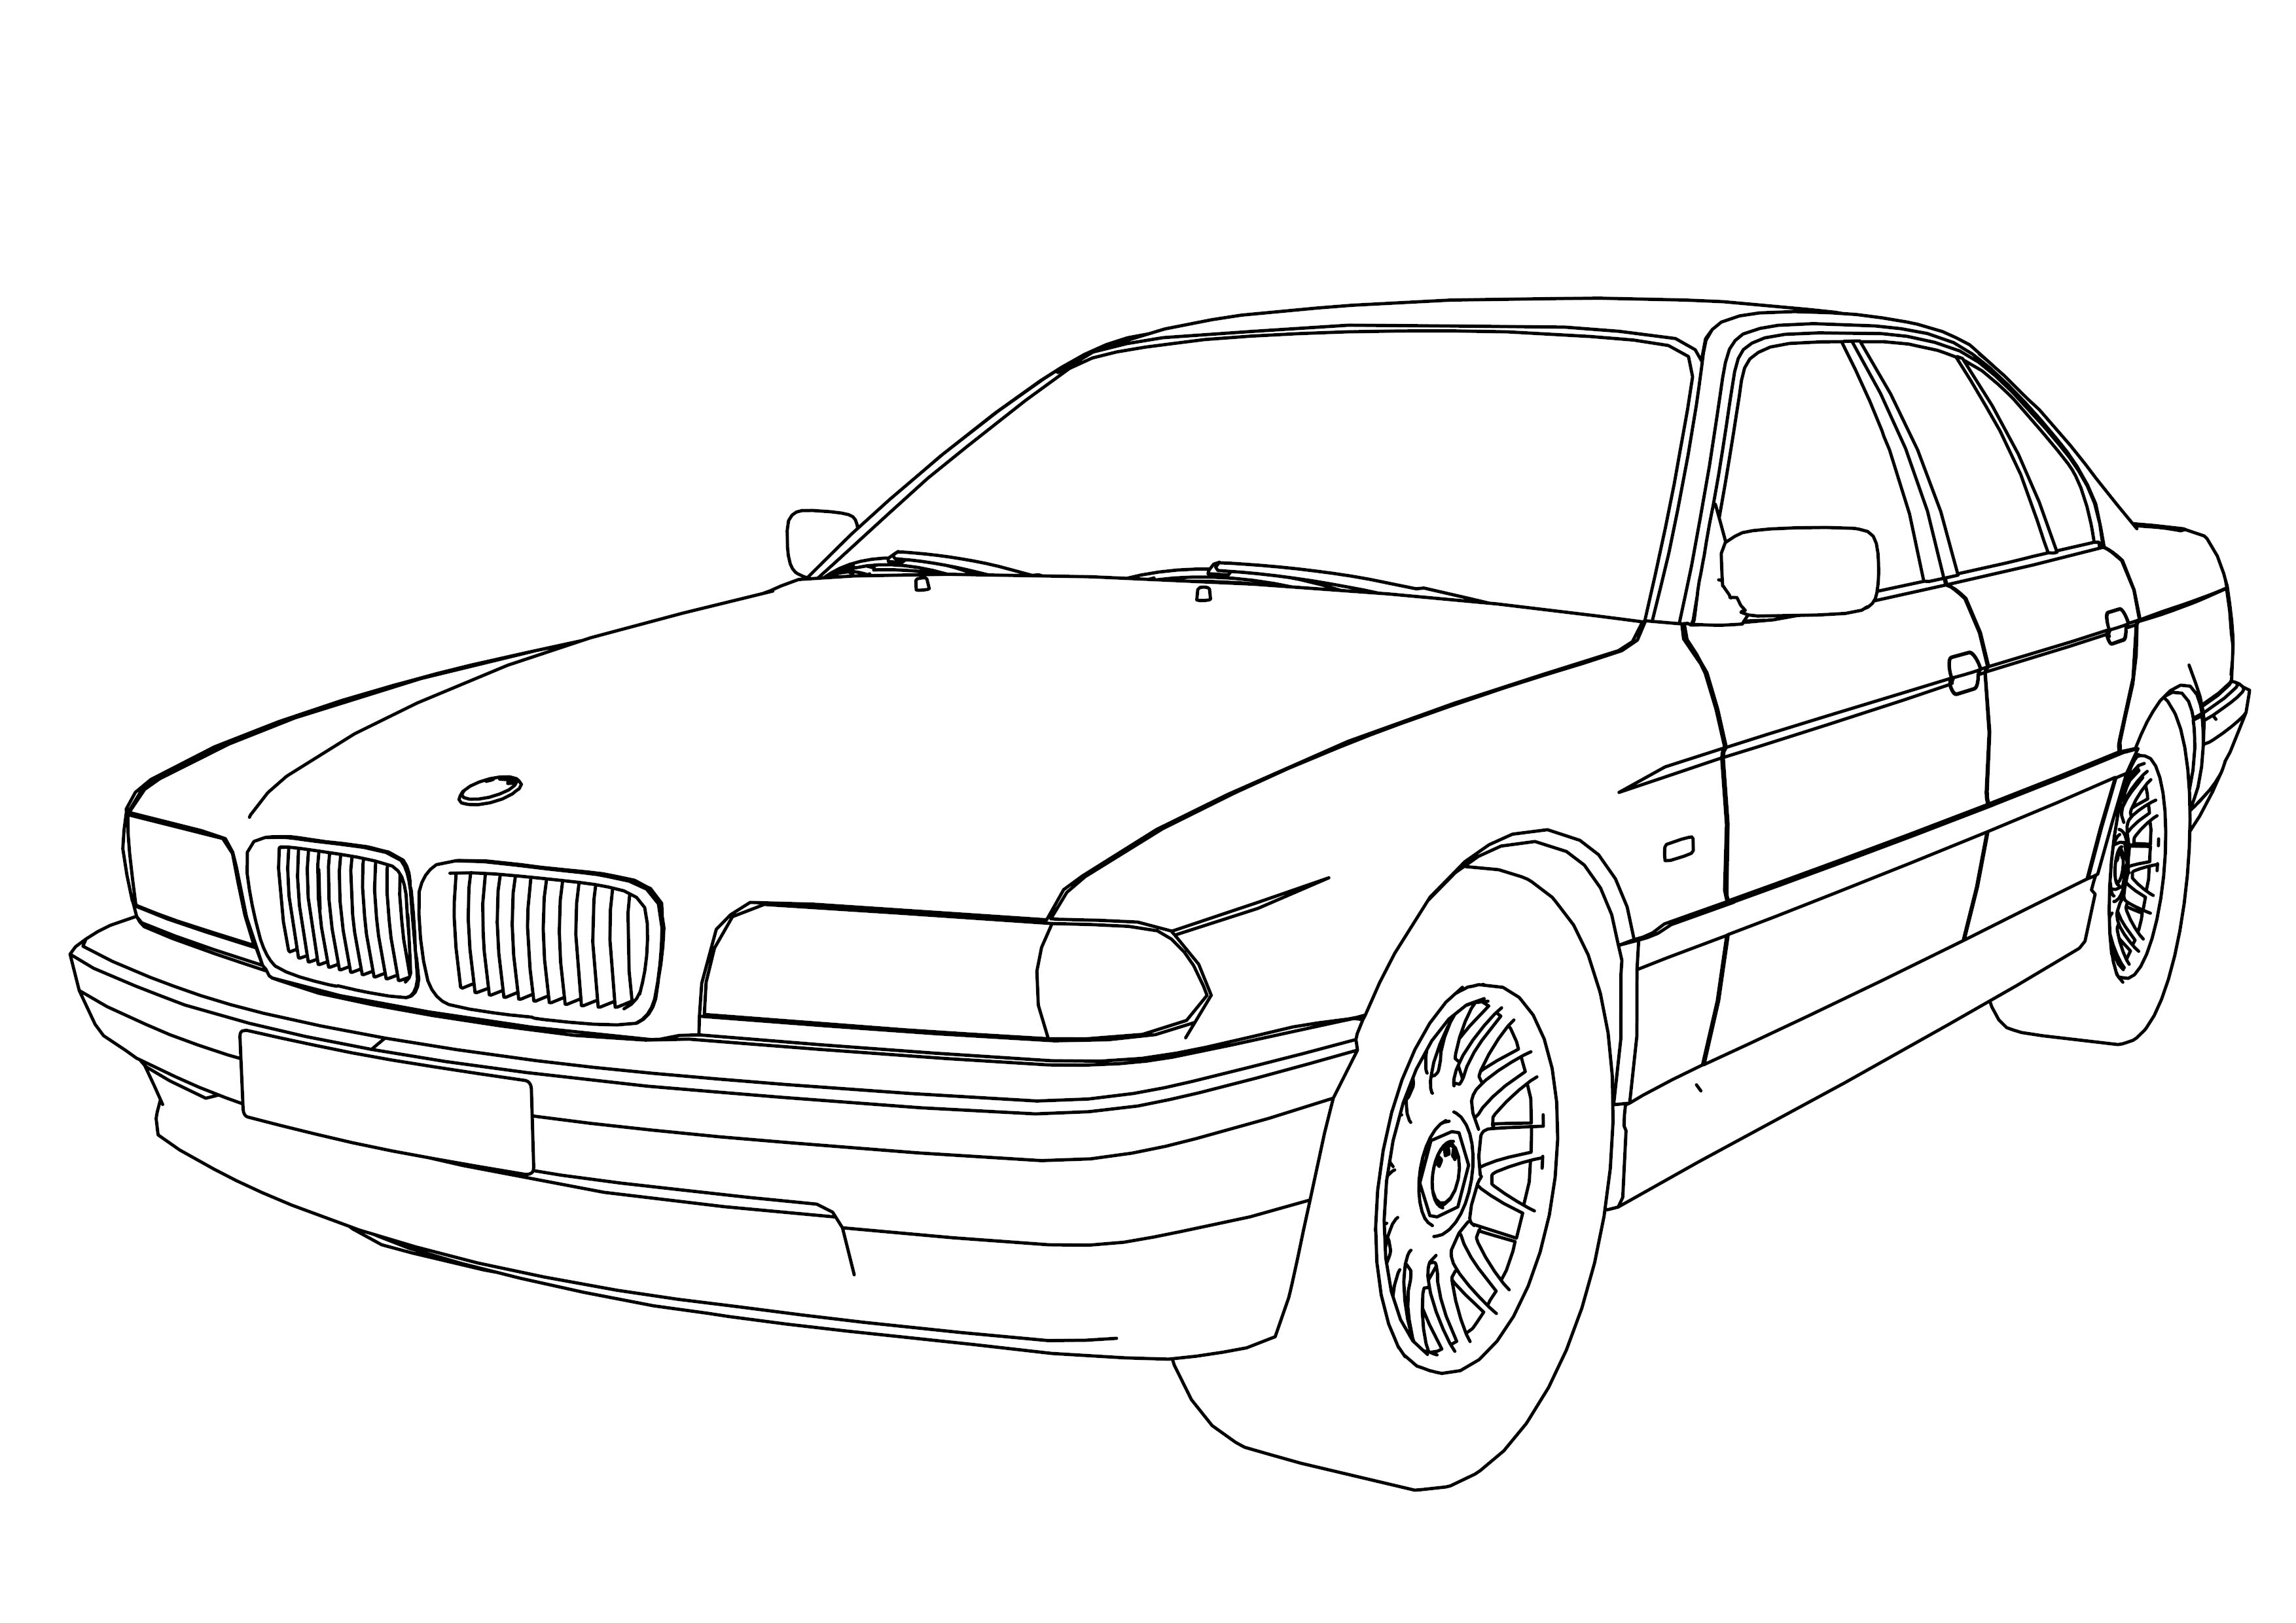 Ausmalbilder Auto Bmw : Bmw 750 Model Car Coloring Page